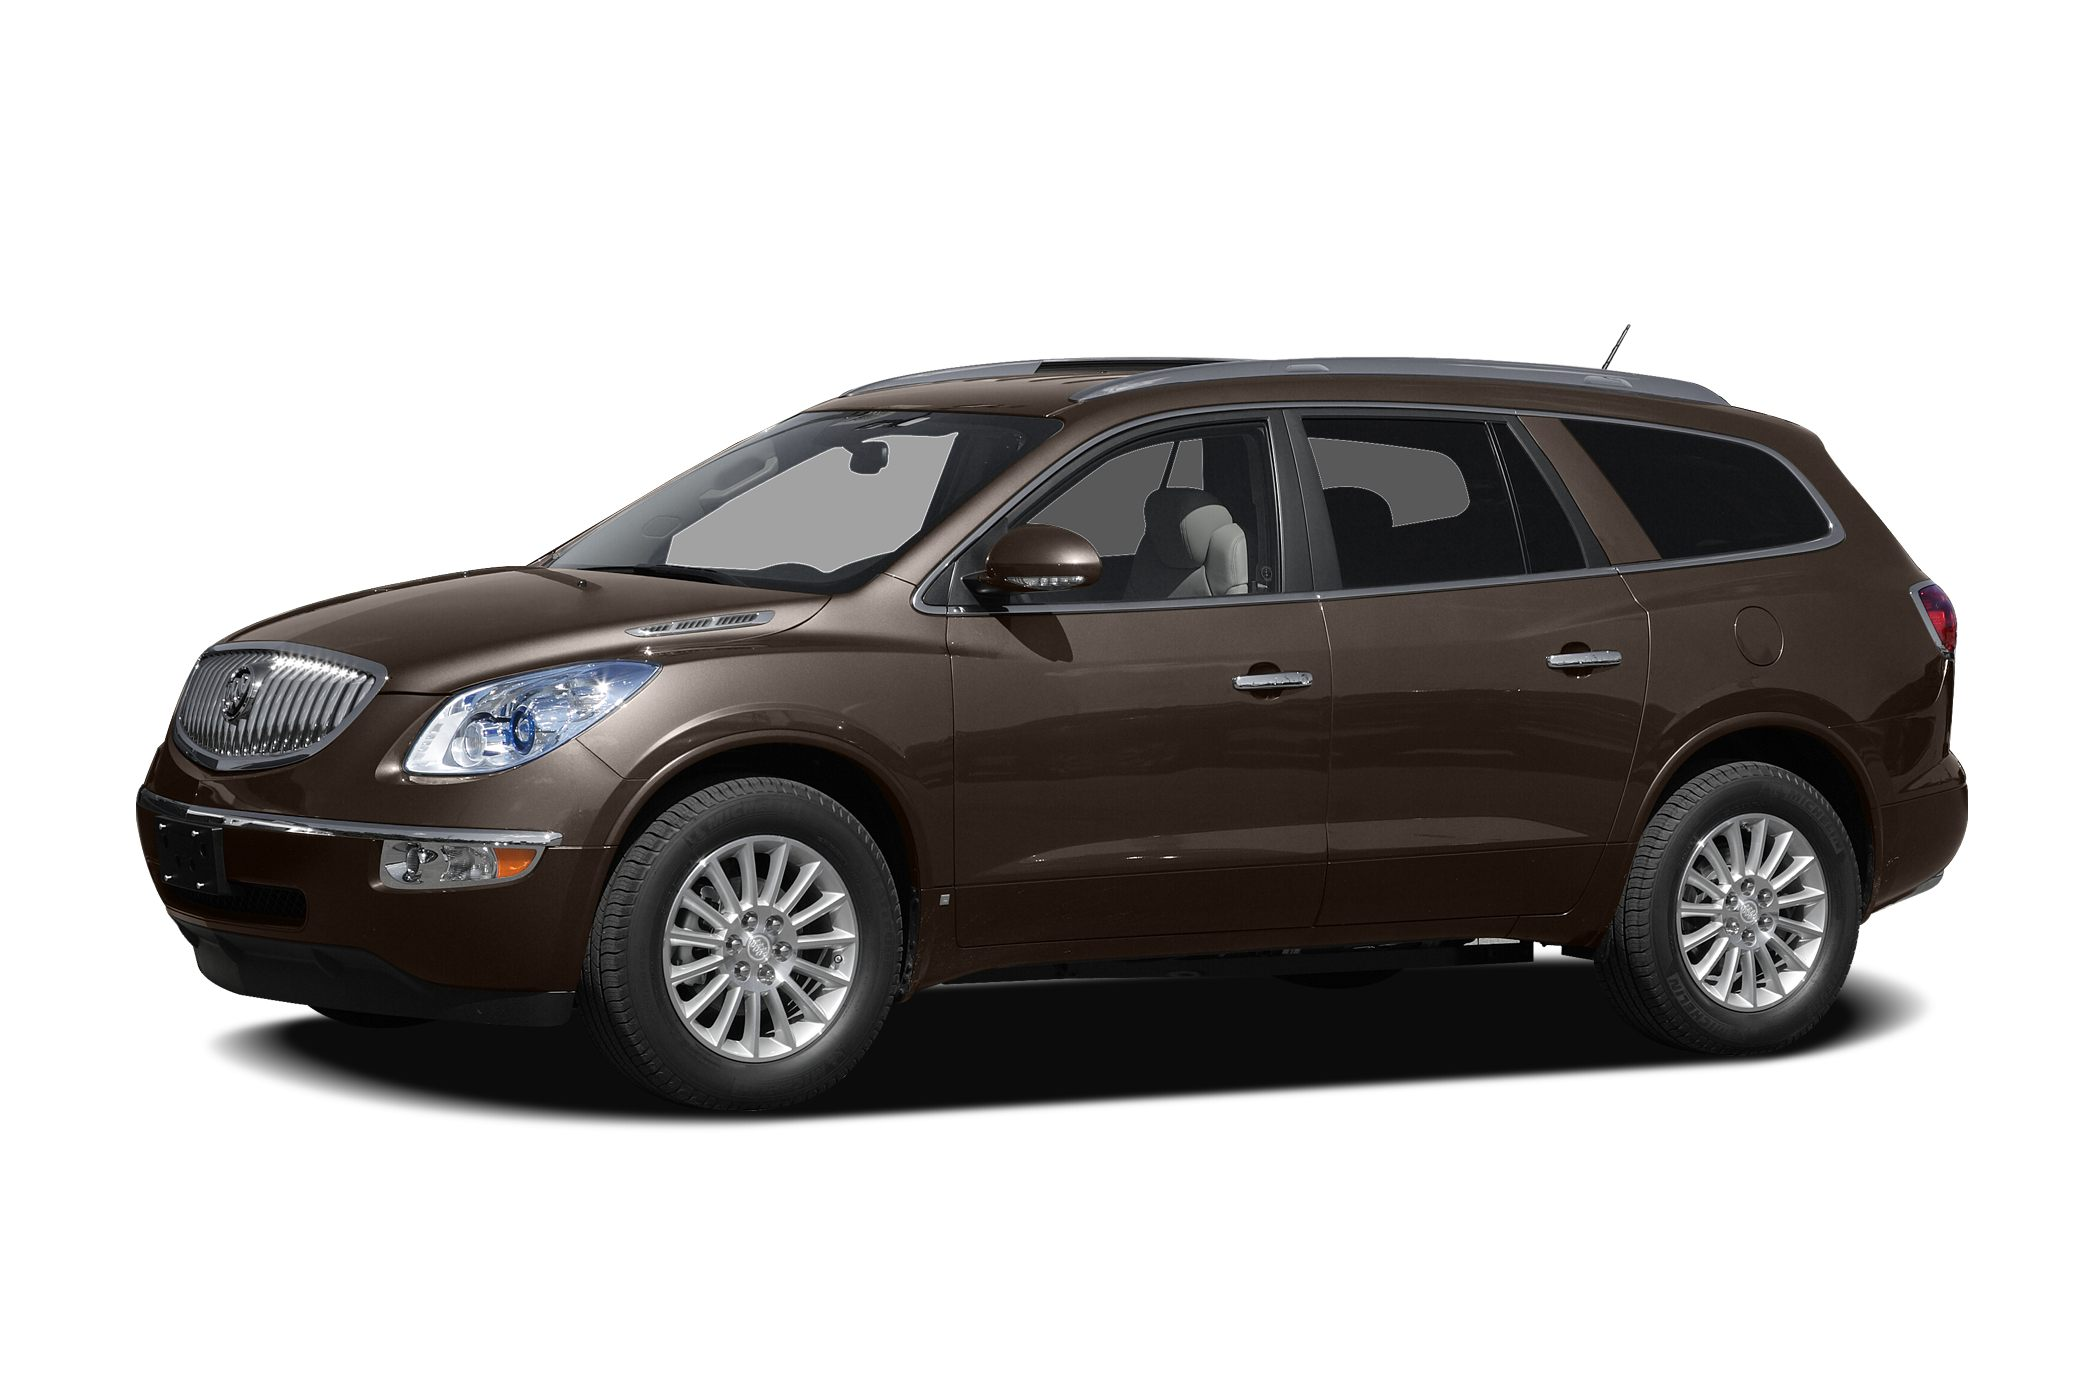 2008 Buick Enclave CXL SUV for sale in Sylacauga for $16,595 with 90,419 miles.